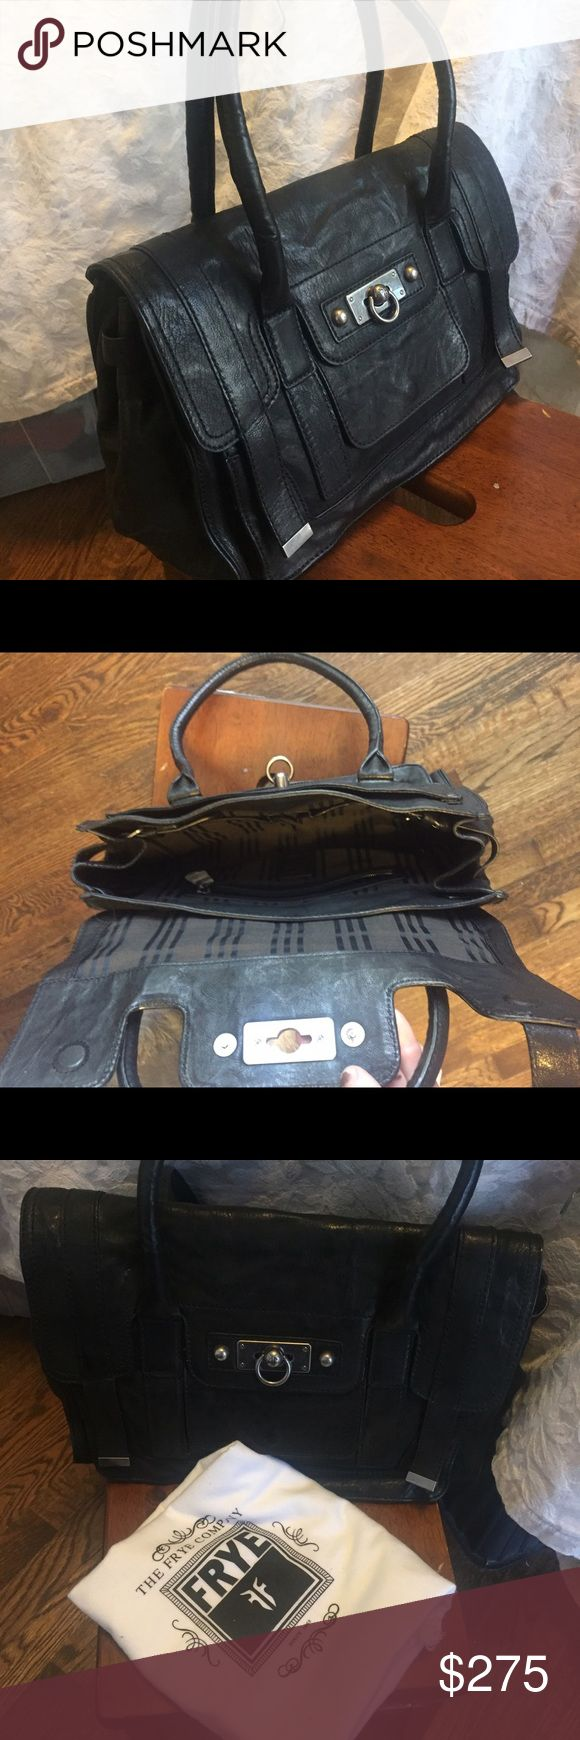 """Frye Leather Satchel with Dust Bag This buttery soft black leather satchel with silver/pewter hardware. Magnetic front flap closure with ring clasp.  Two top handles, purse can be carried tucked under arm or hang at crook. 14"""" length x 10""""height x 5"""" wide. Found a small 1.5"""" silver mark while inspecting this for sale- didn't know it existed before this posting so very discreet!! Frye Bags Satchels"""